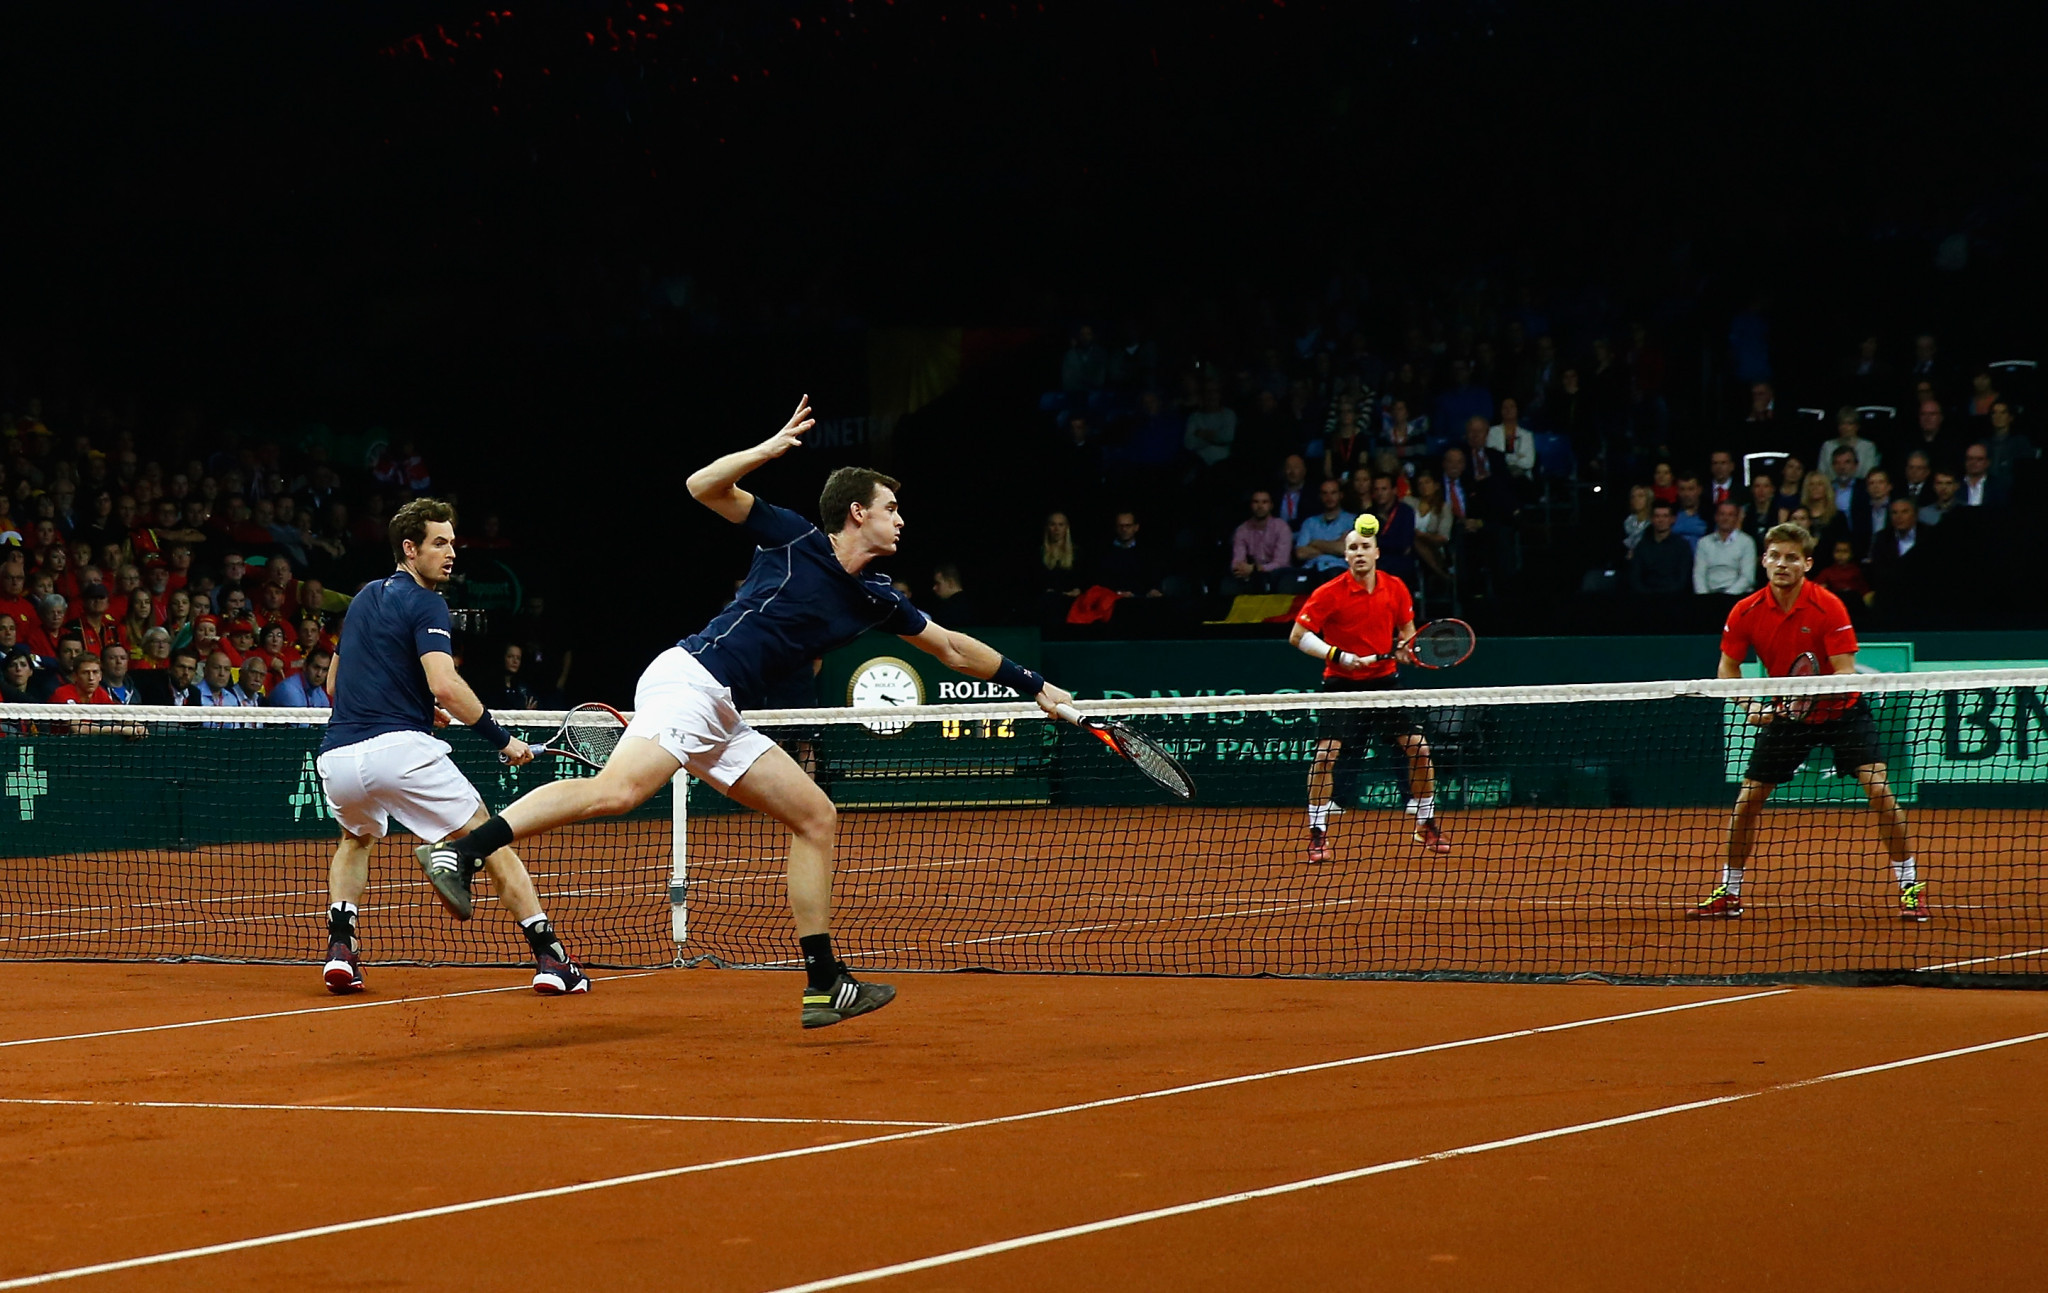 Doubles is only really meaningful when it takes place in an event like the Davis Cup, such as 2015 when brothers Andy and Jamie Murray teamed-up to help Britain beat Belgium in the final ©Getty Images